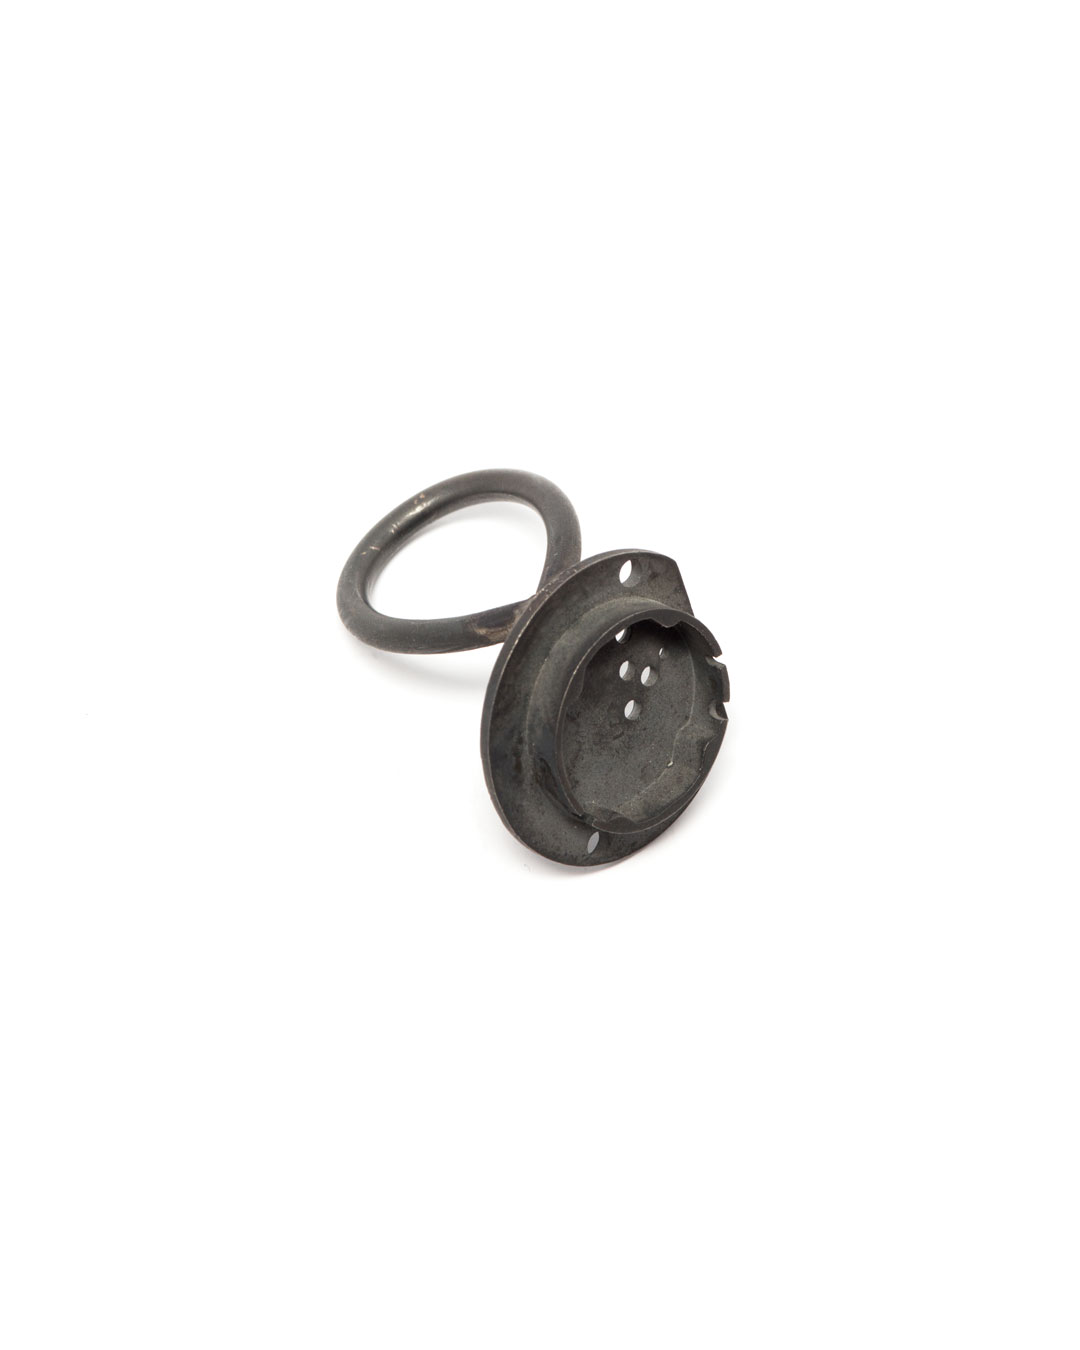 Winfried Krüger, untitled, 2008, ring; oxidised silver, ø 25 mm, €1090